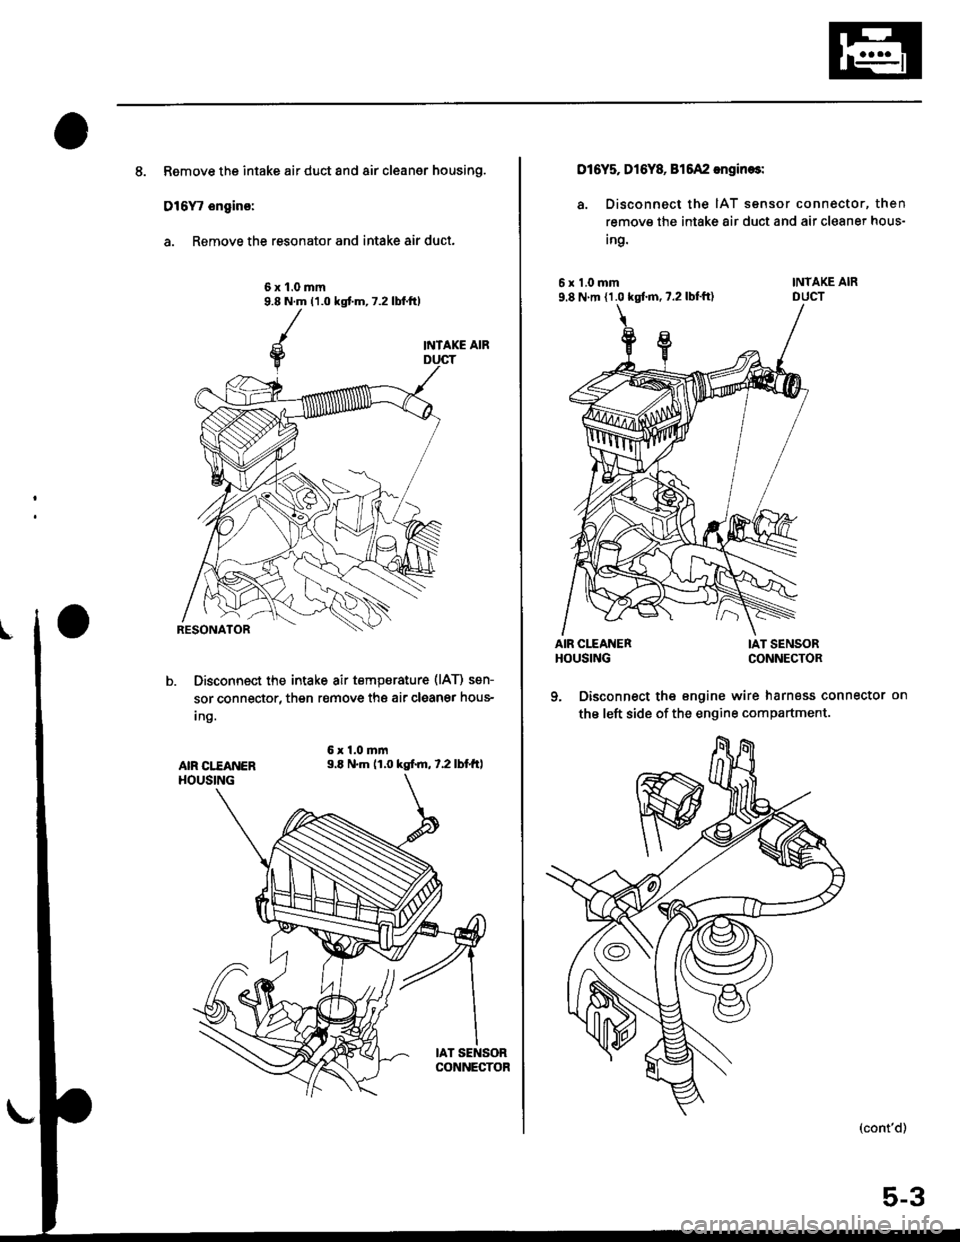 2006 Honda Accord Engine Diagram Wiring Library 1 3 L 1998 Lx 2 3l Auto 2001